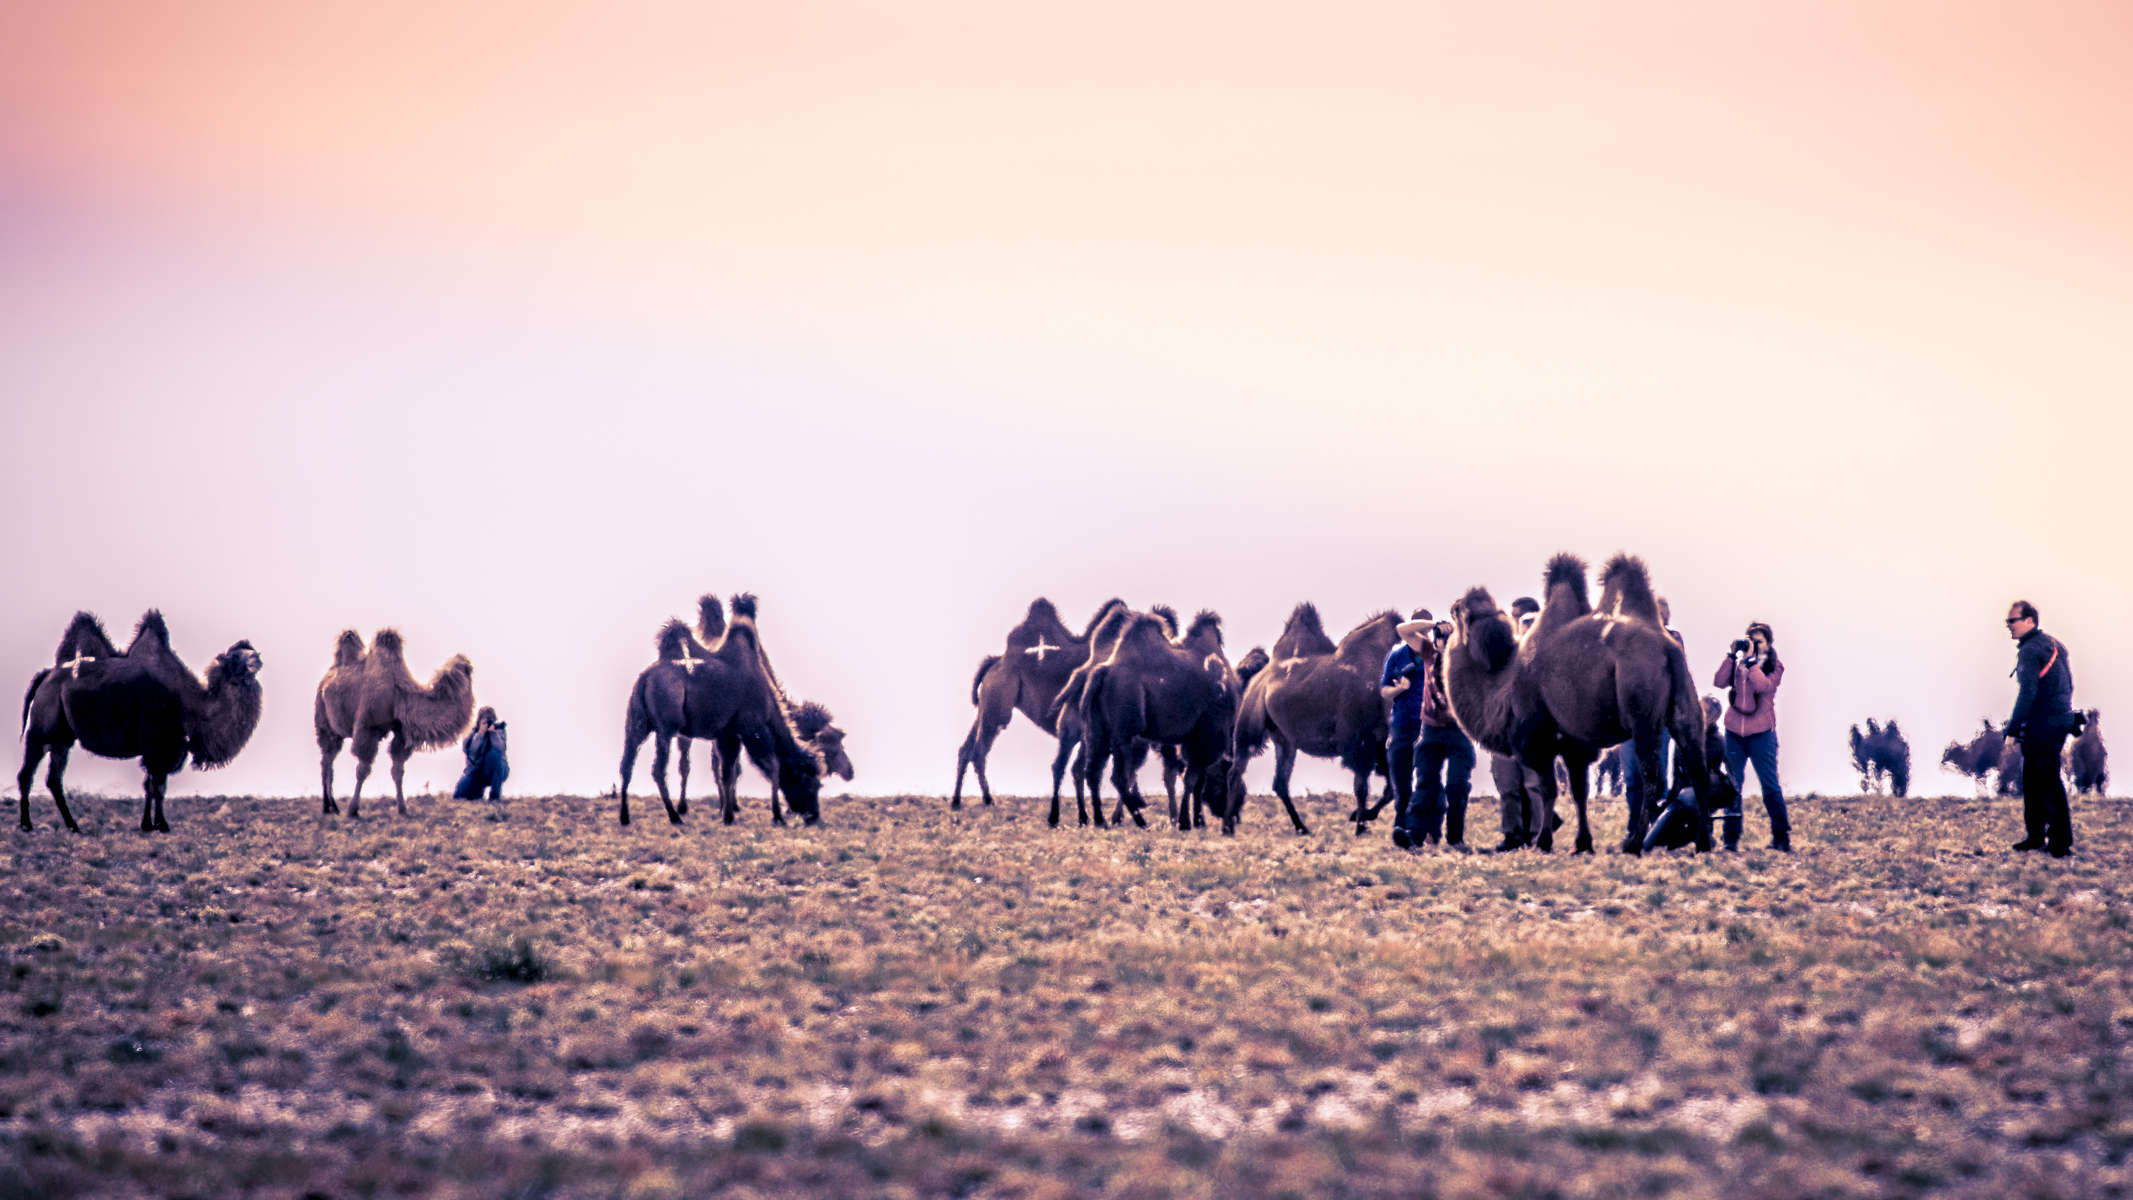 Shooting the camels.  Photo Courtesy of Mongolia Photo Tour